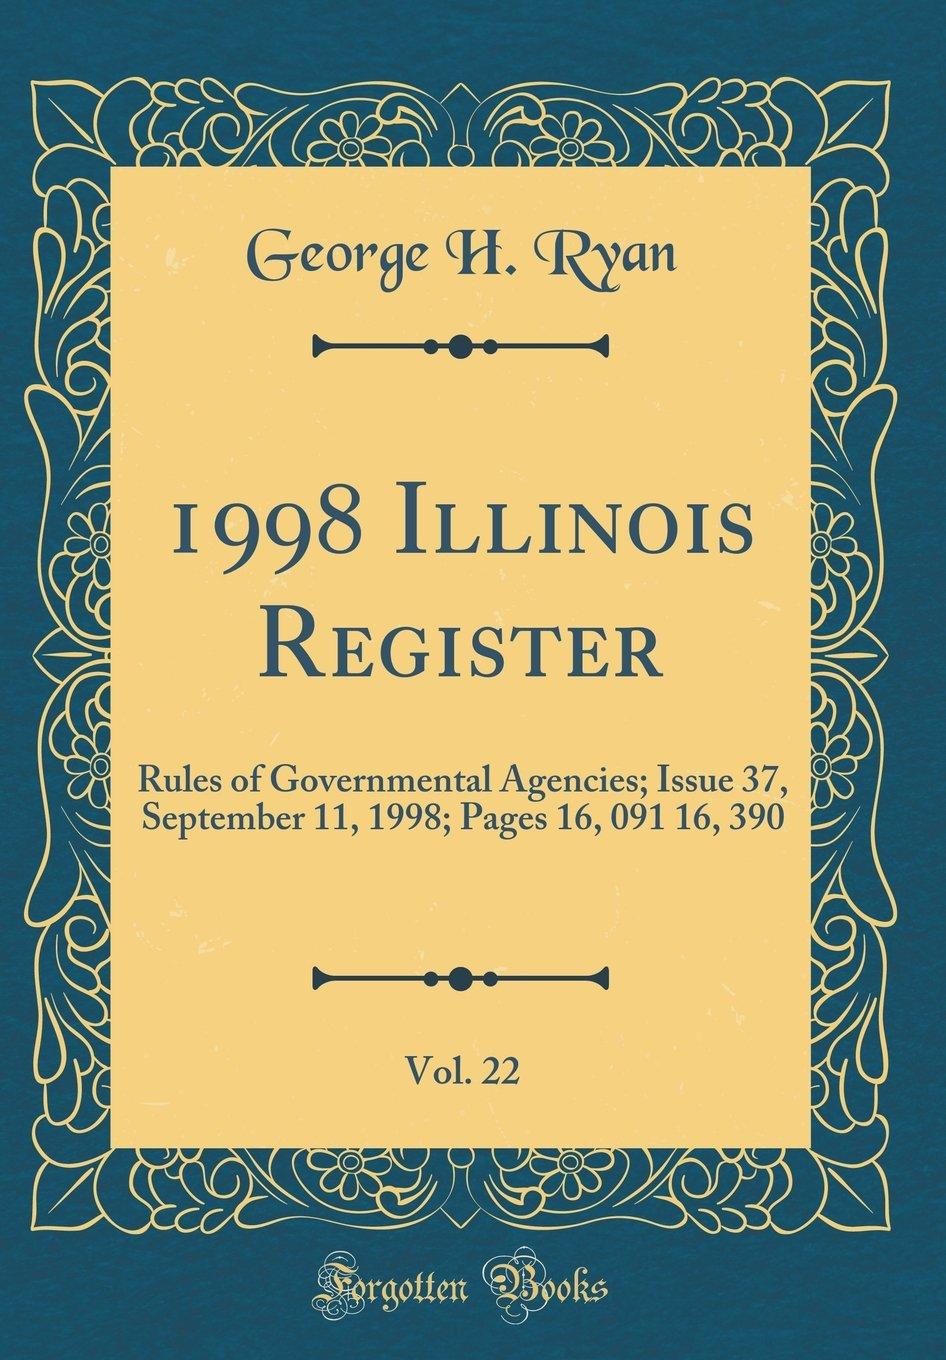 1998 Illinois Register, Vol. 22: Rules of Governmental Agencies; Issue 37, September 11, 1998; Pages 16, 091 16, 390 (Classic Reprint) pdf